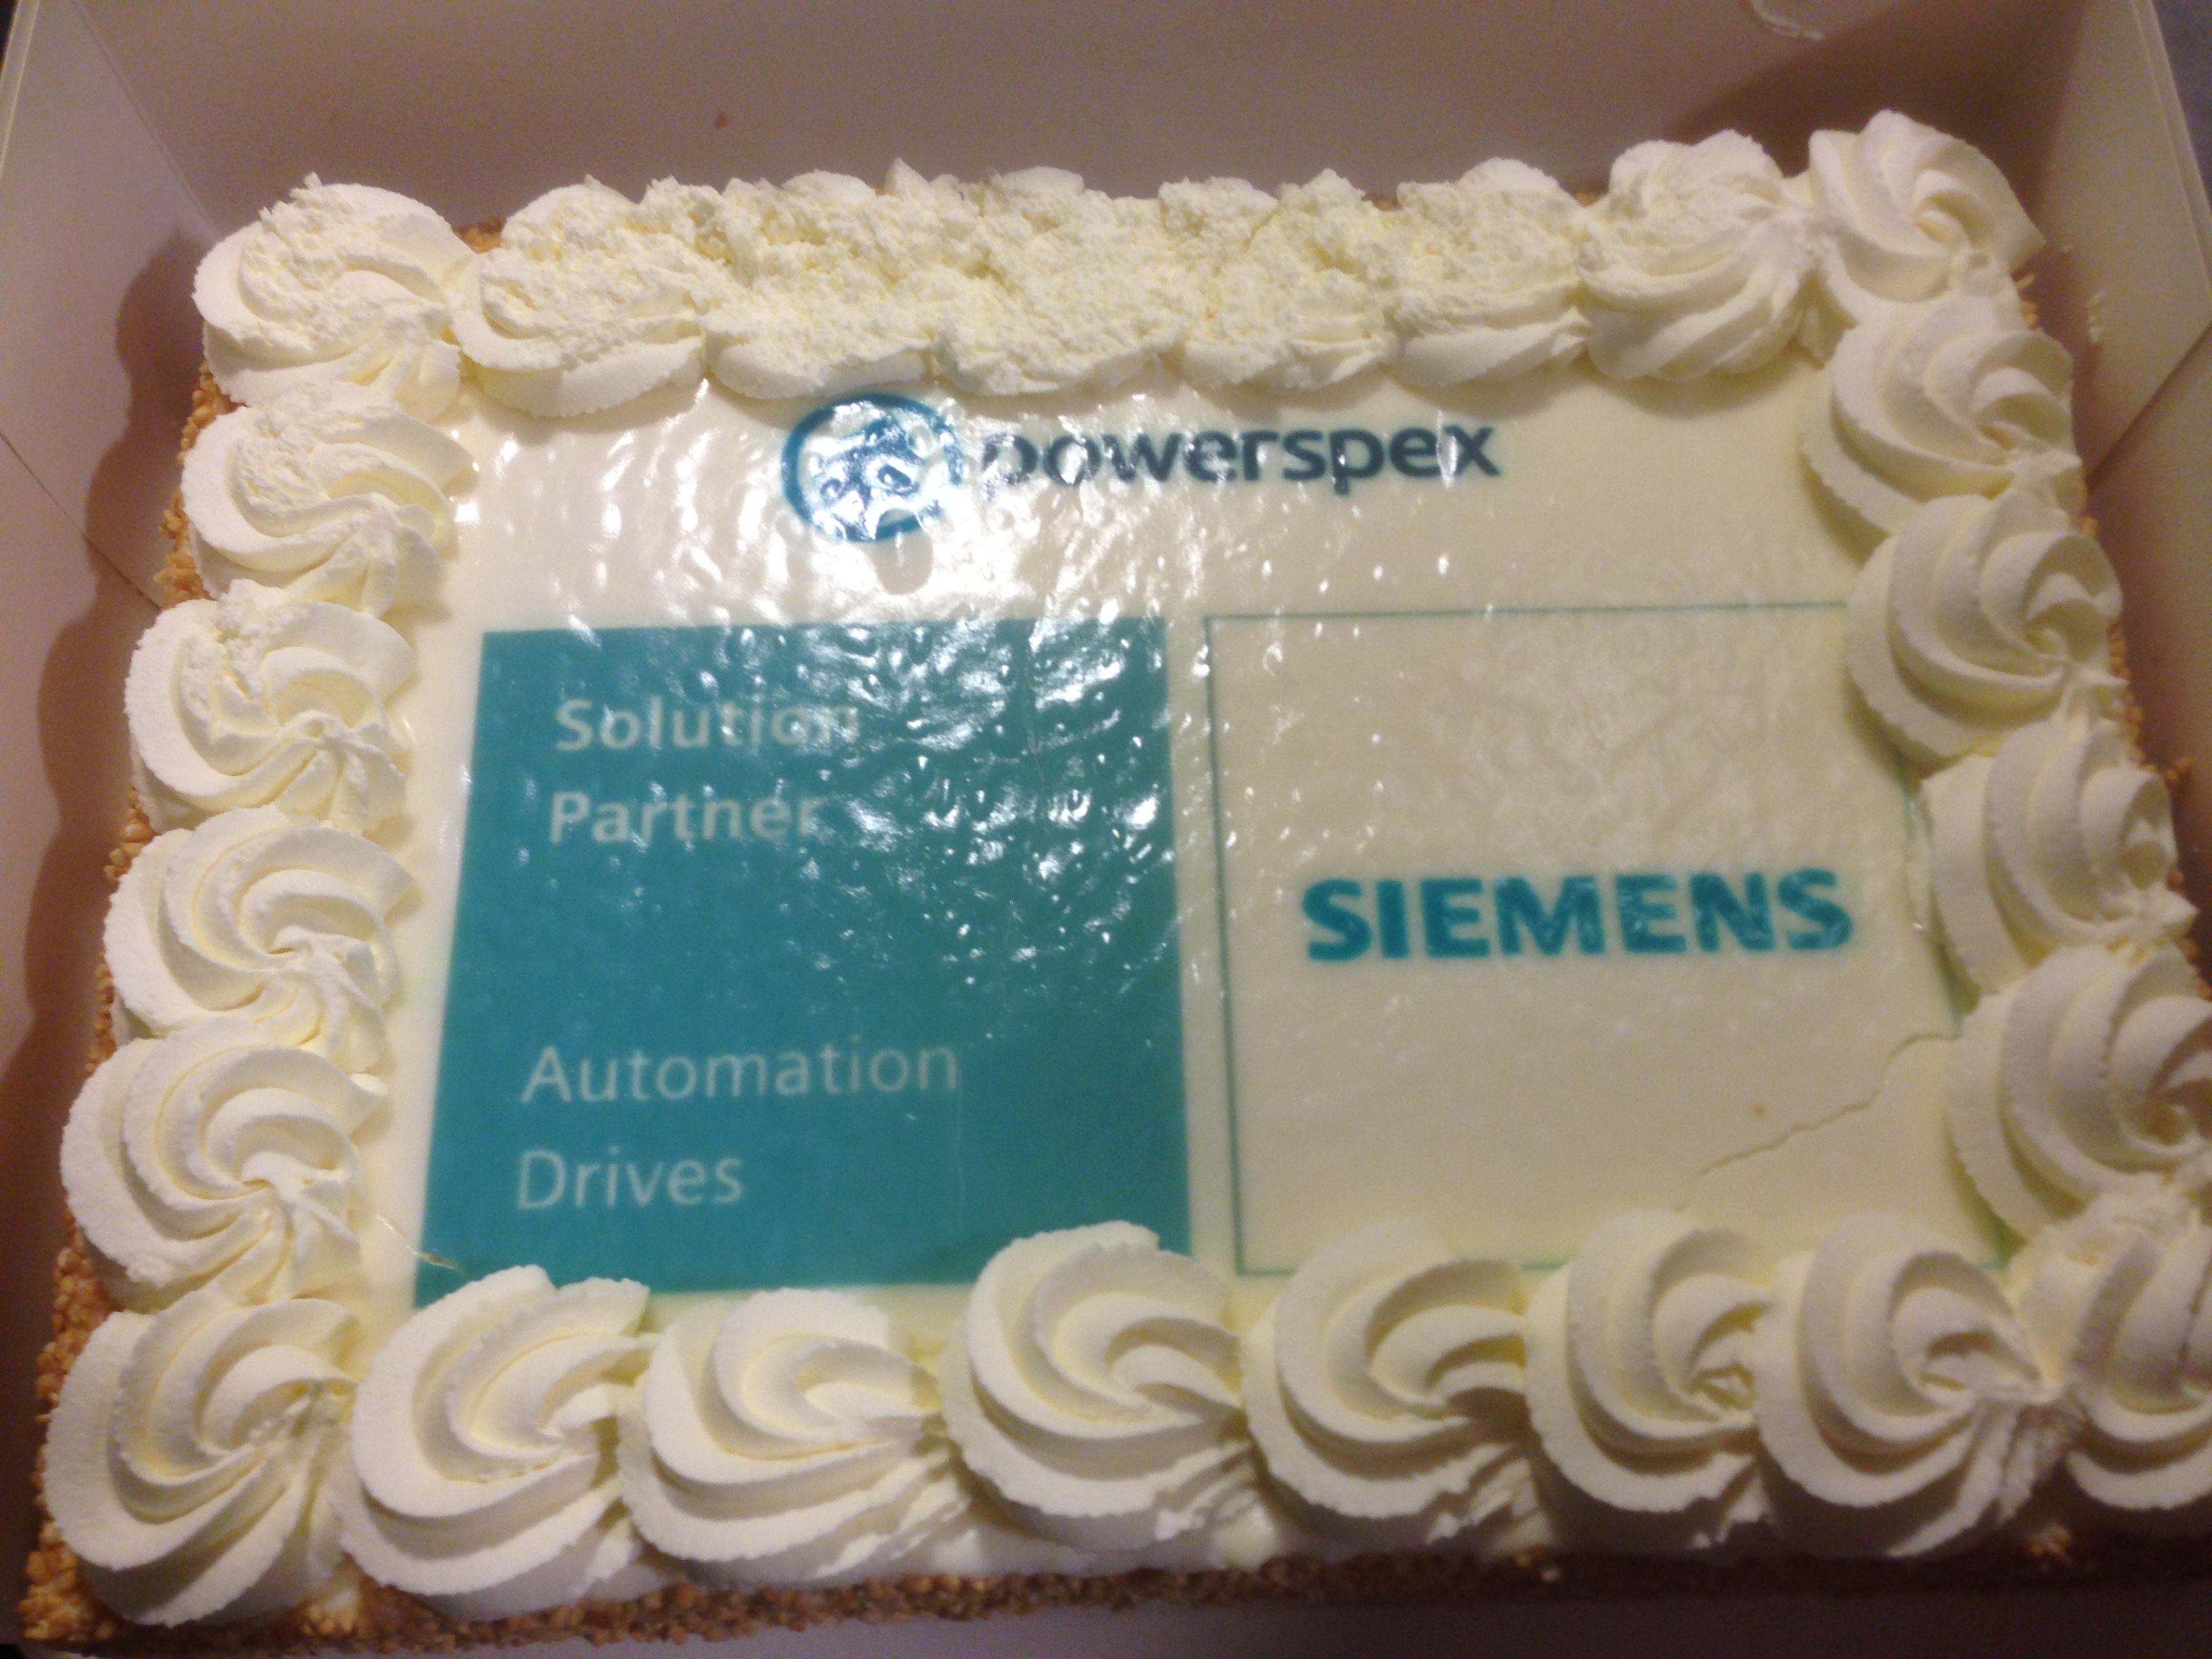 Siemens Solution Partners